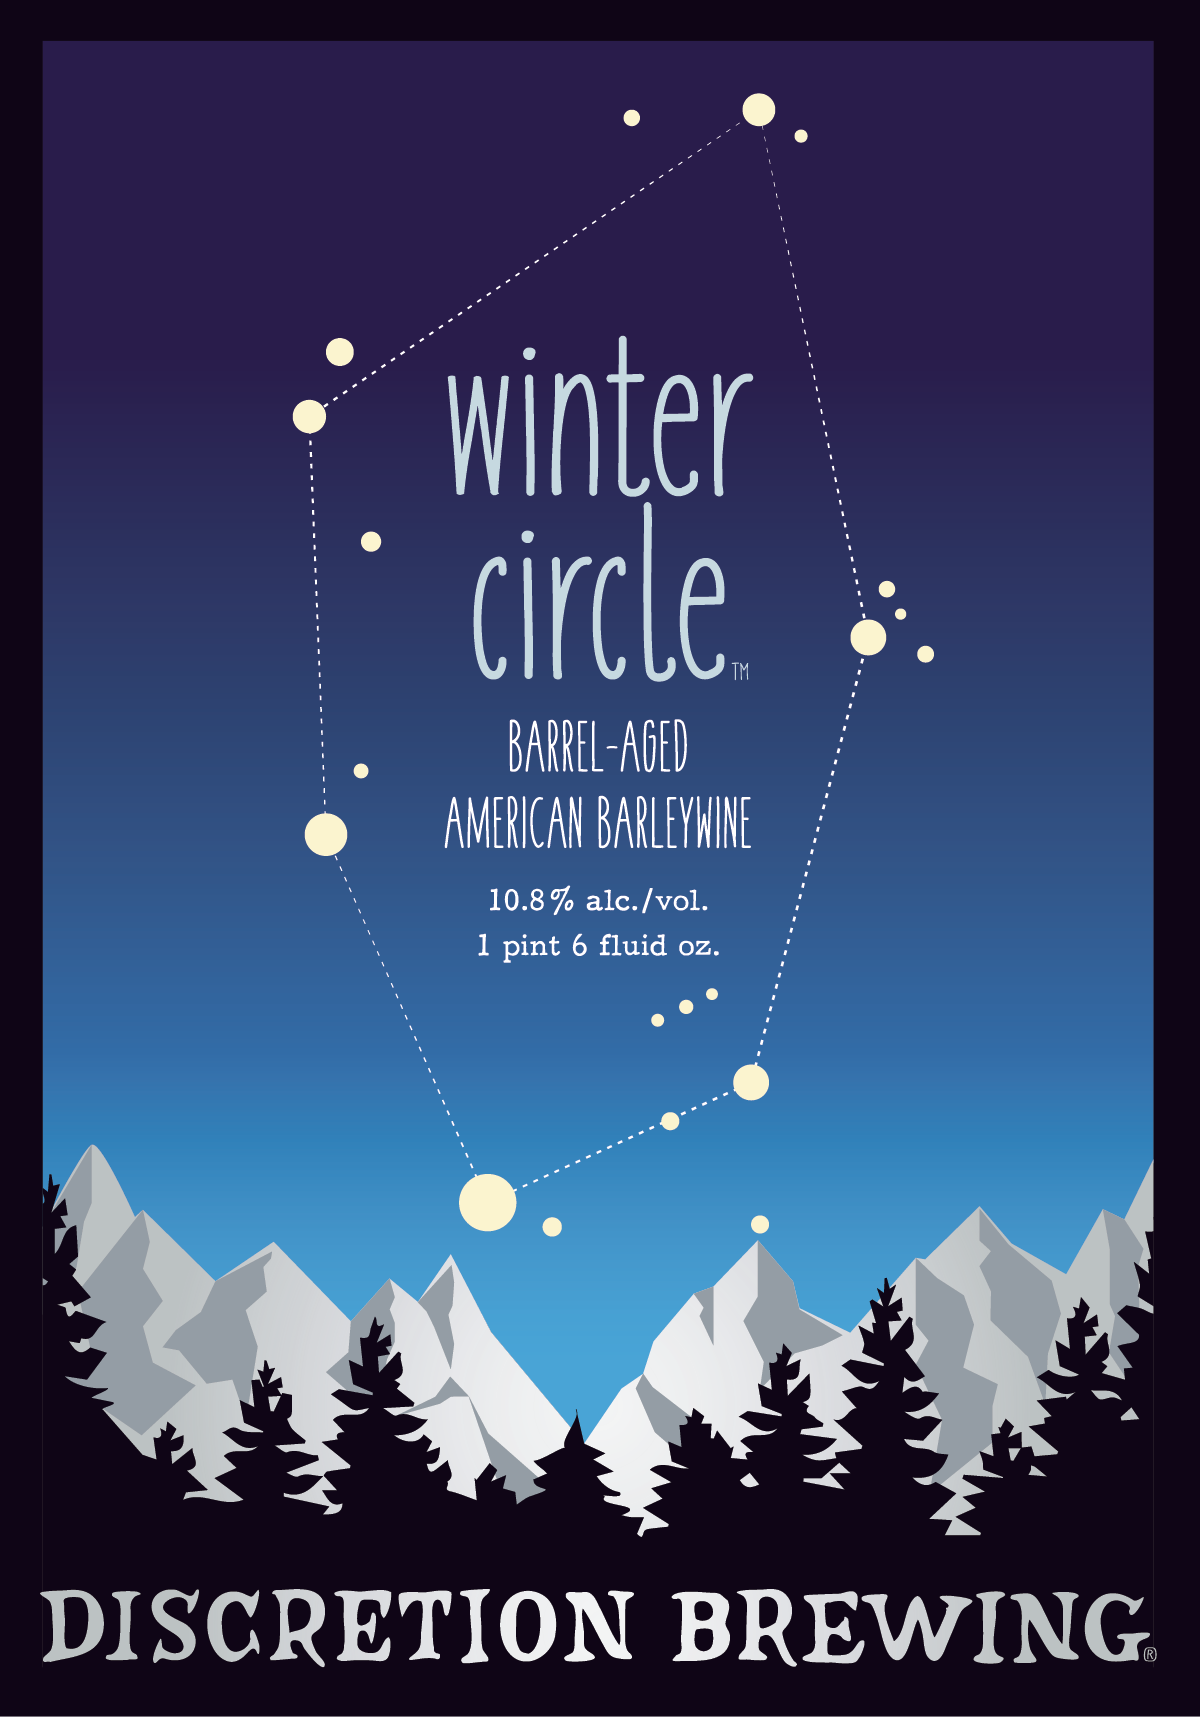 Winter Circle Barrel-Aged Barleywine